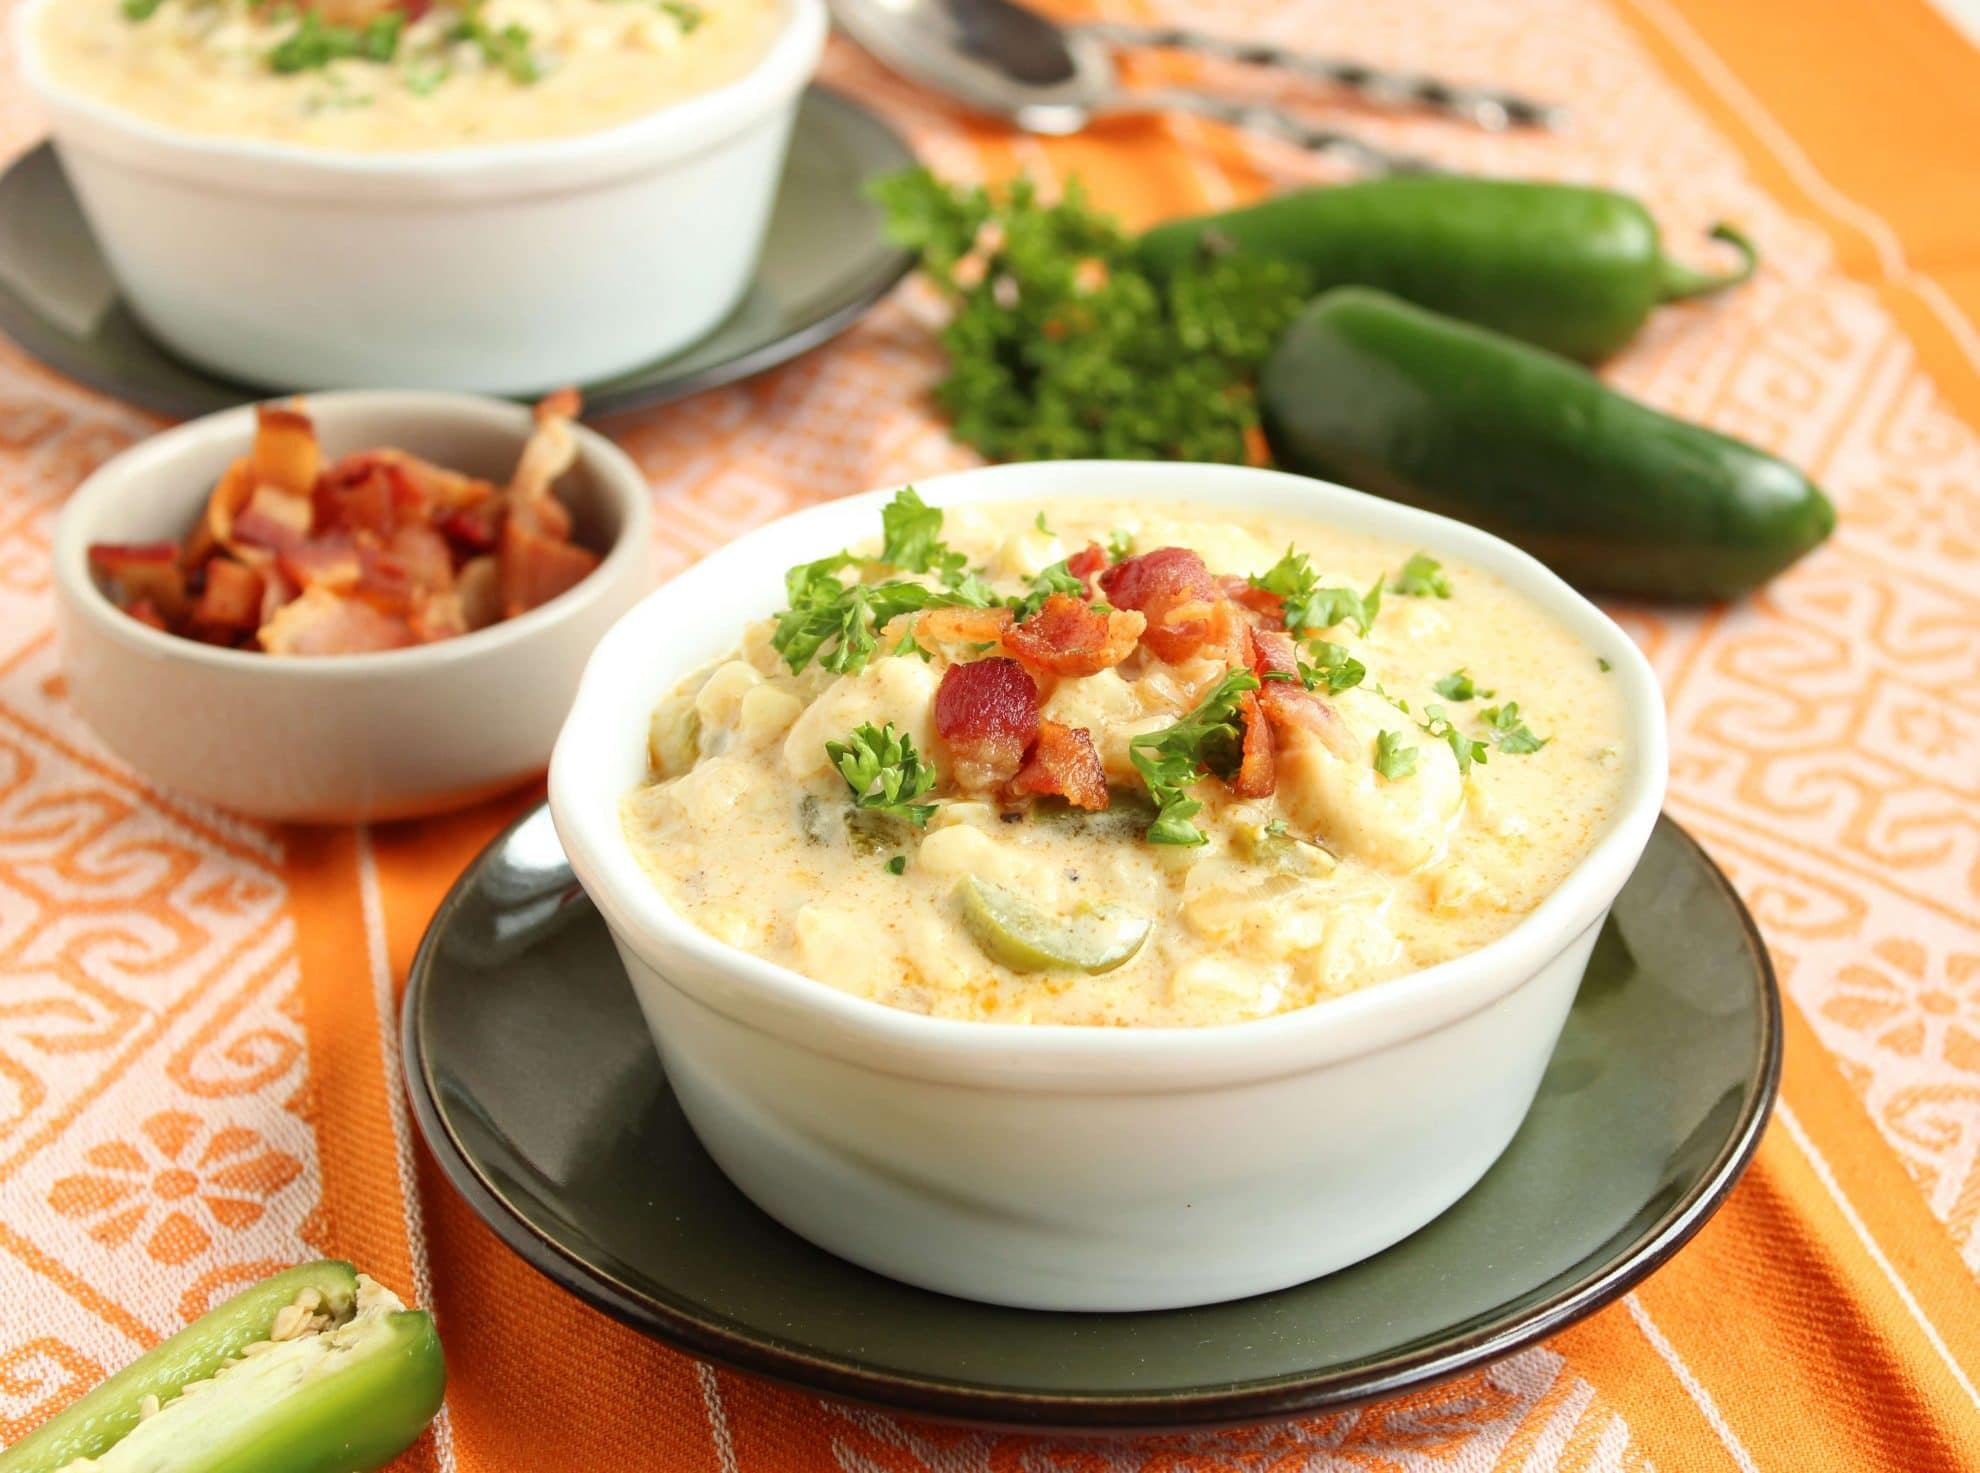 Spicy Corn Chowder with Bacon - The Suburban Soapbox